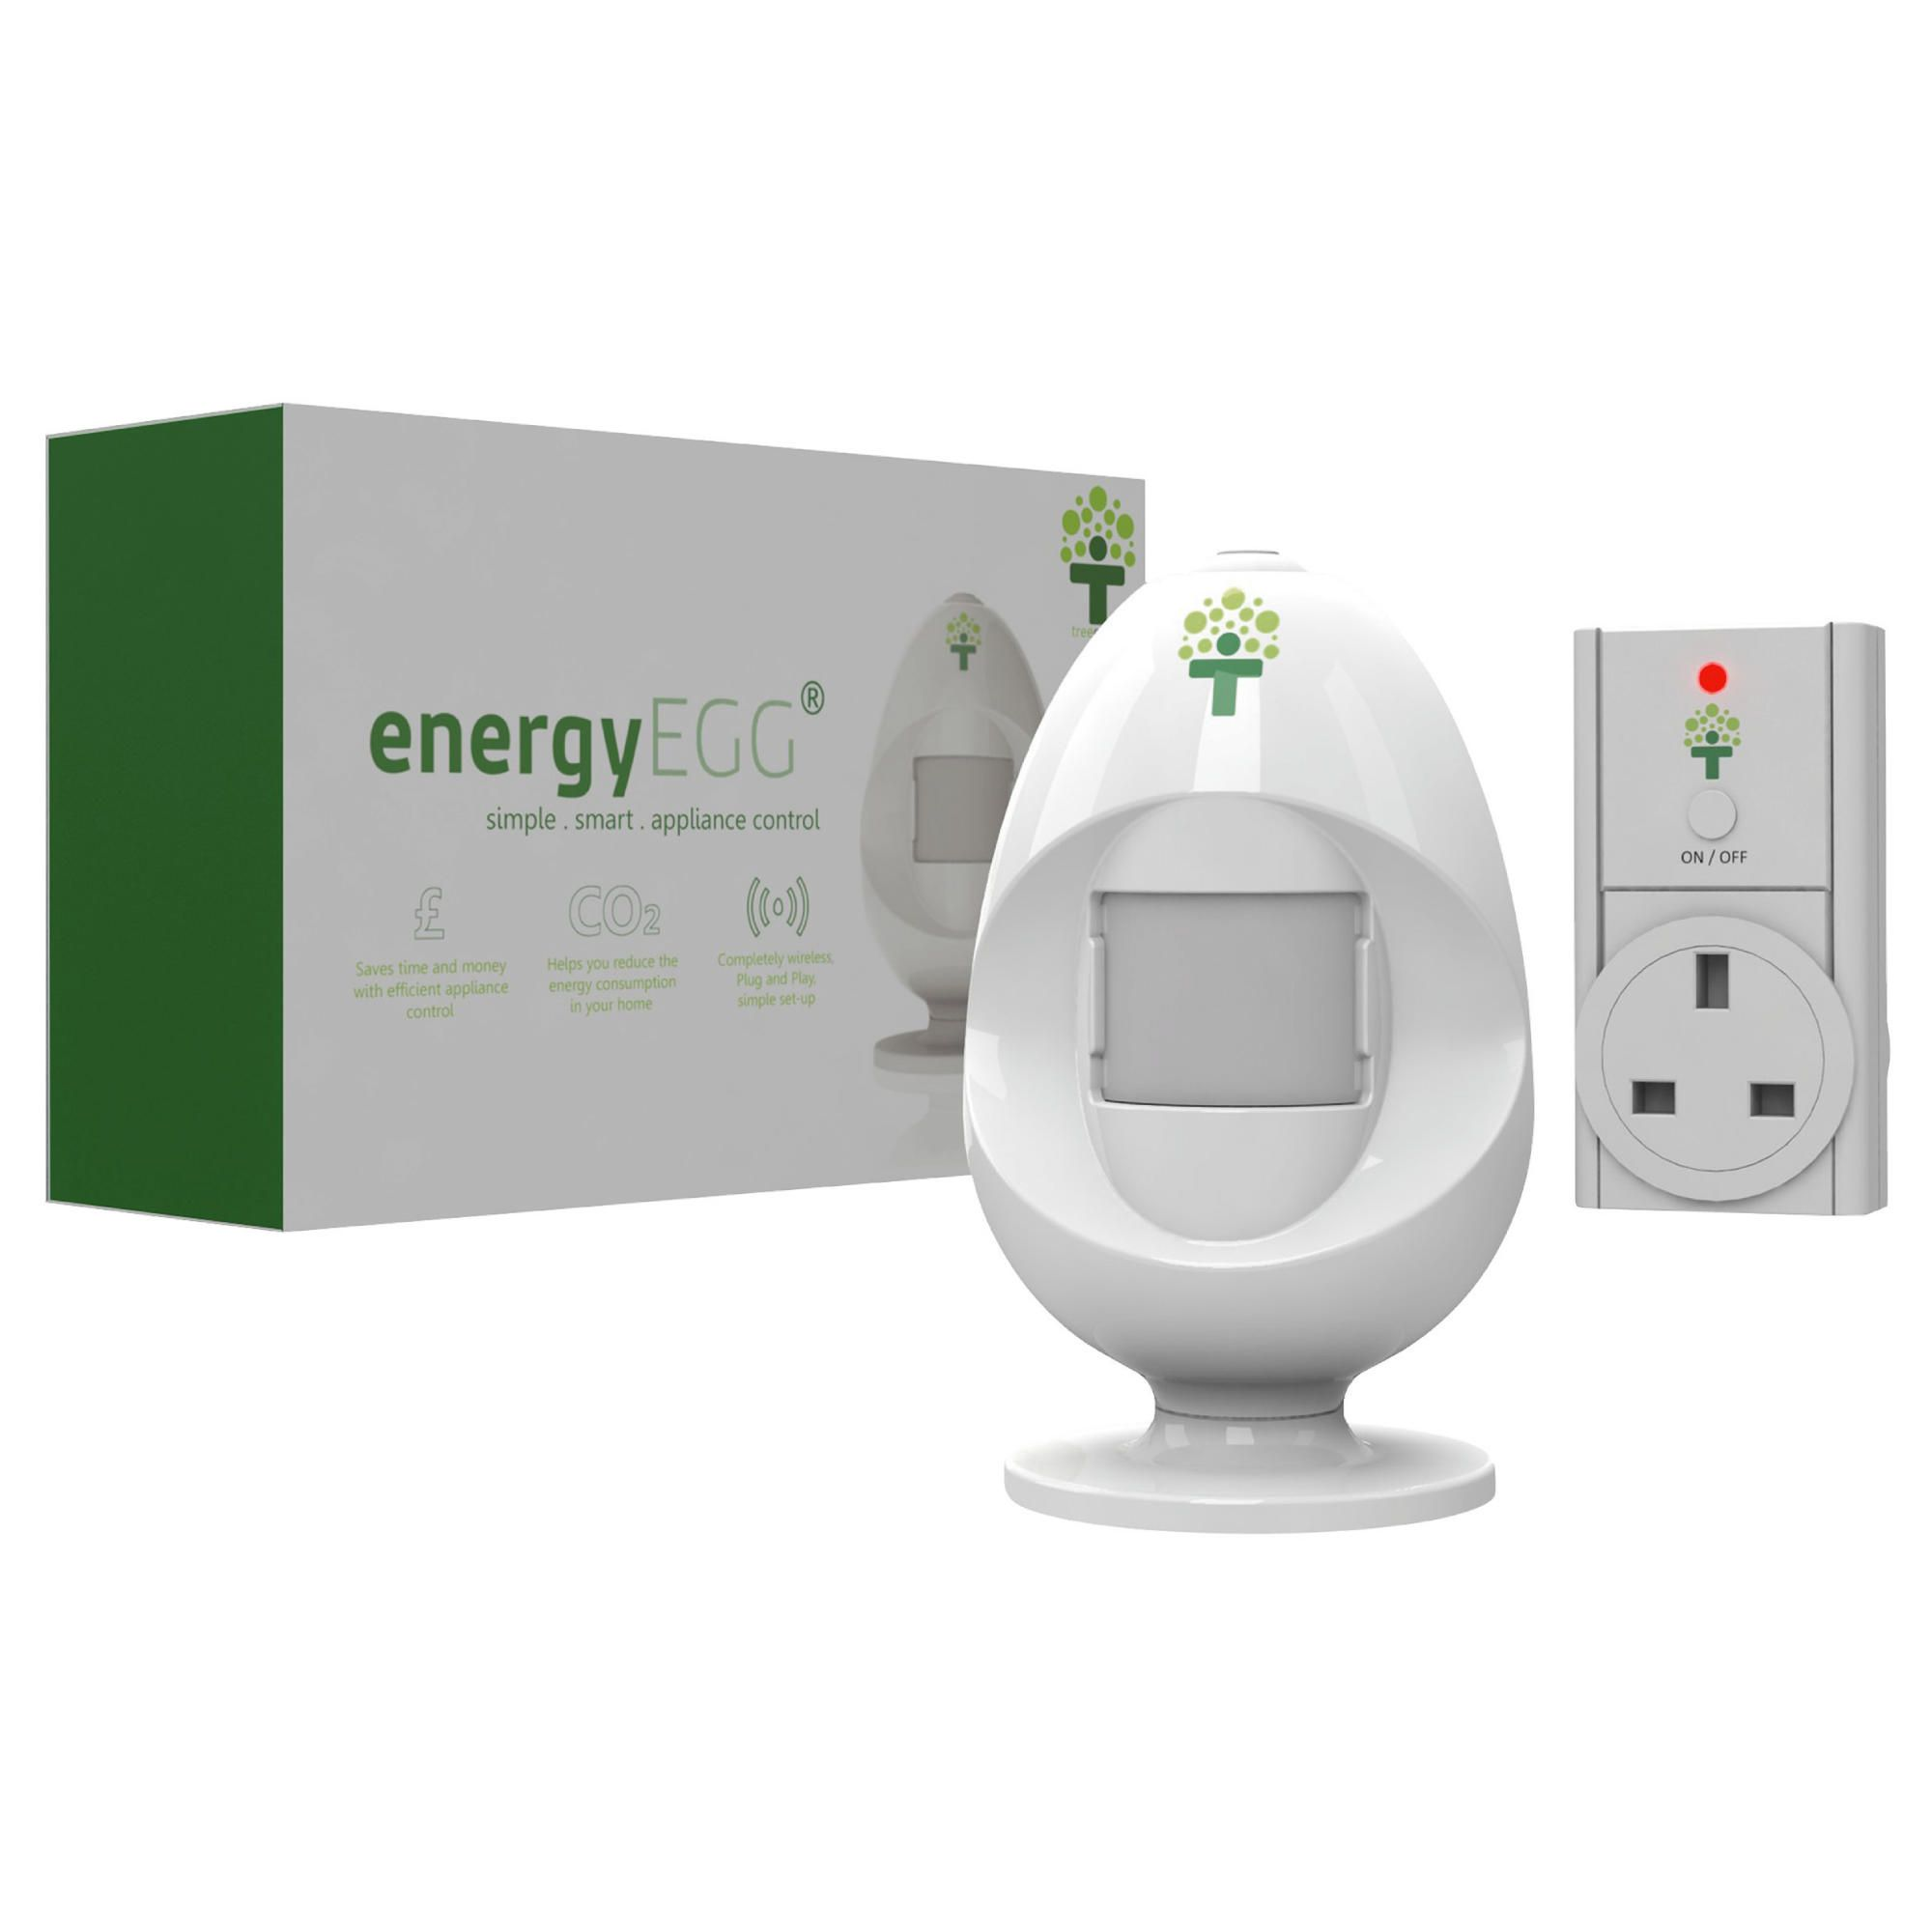 TreeGreen Energy Egg